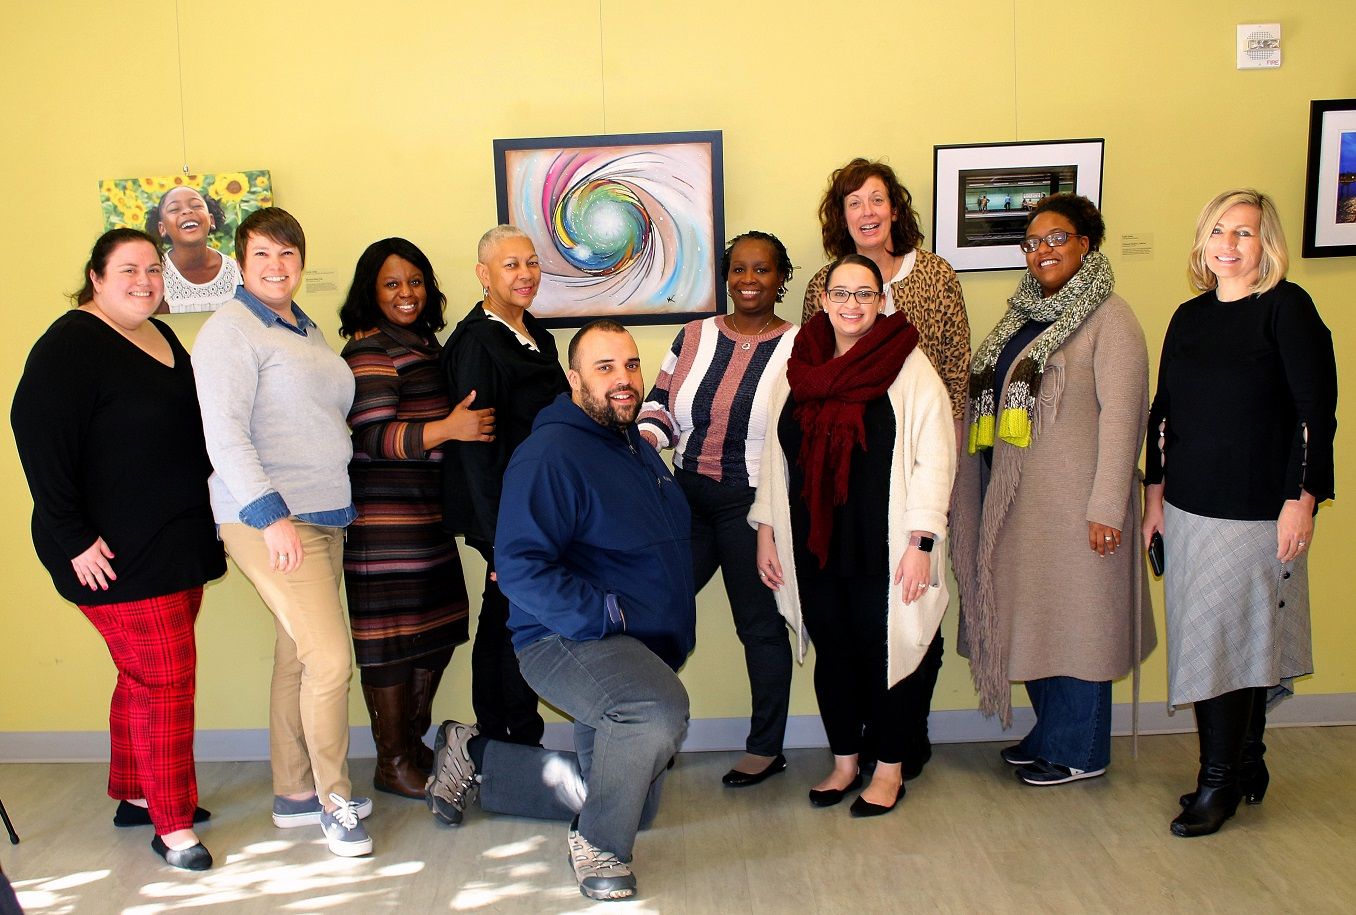 GTPE staff gather around Lewis' artwork at the artists' reception.